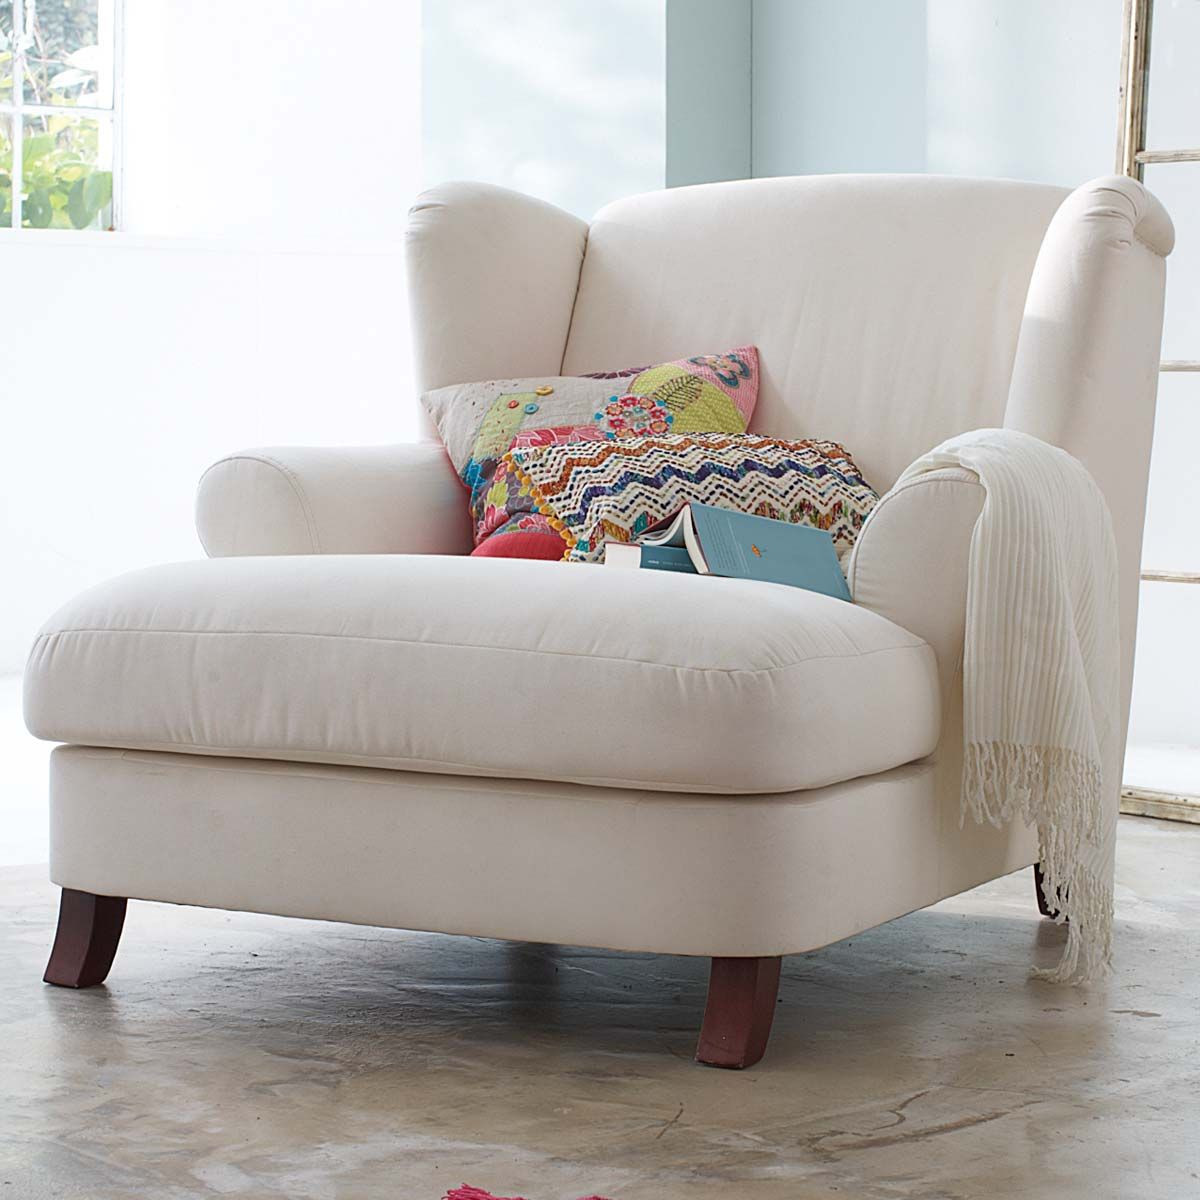 Best ideas about Comfy Reading Chair . Save or Pin dream chair via somewhere north Now.